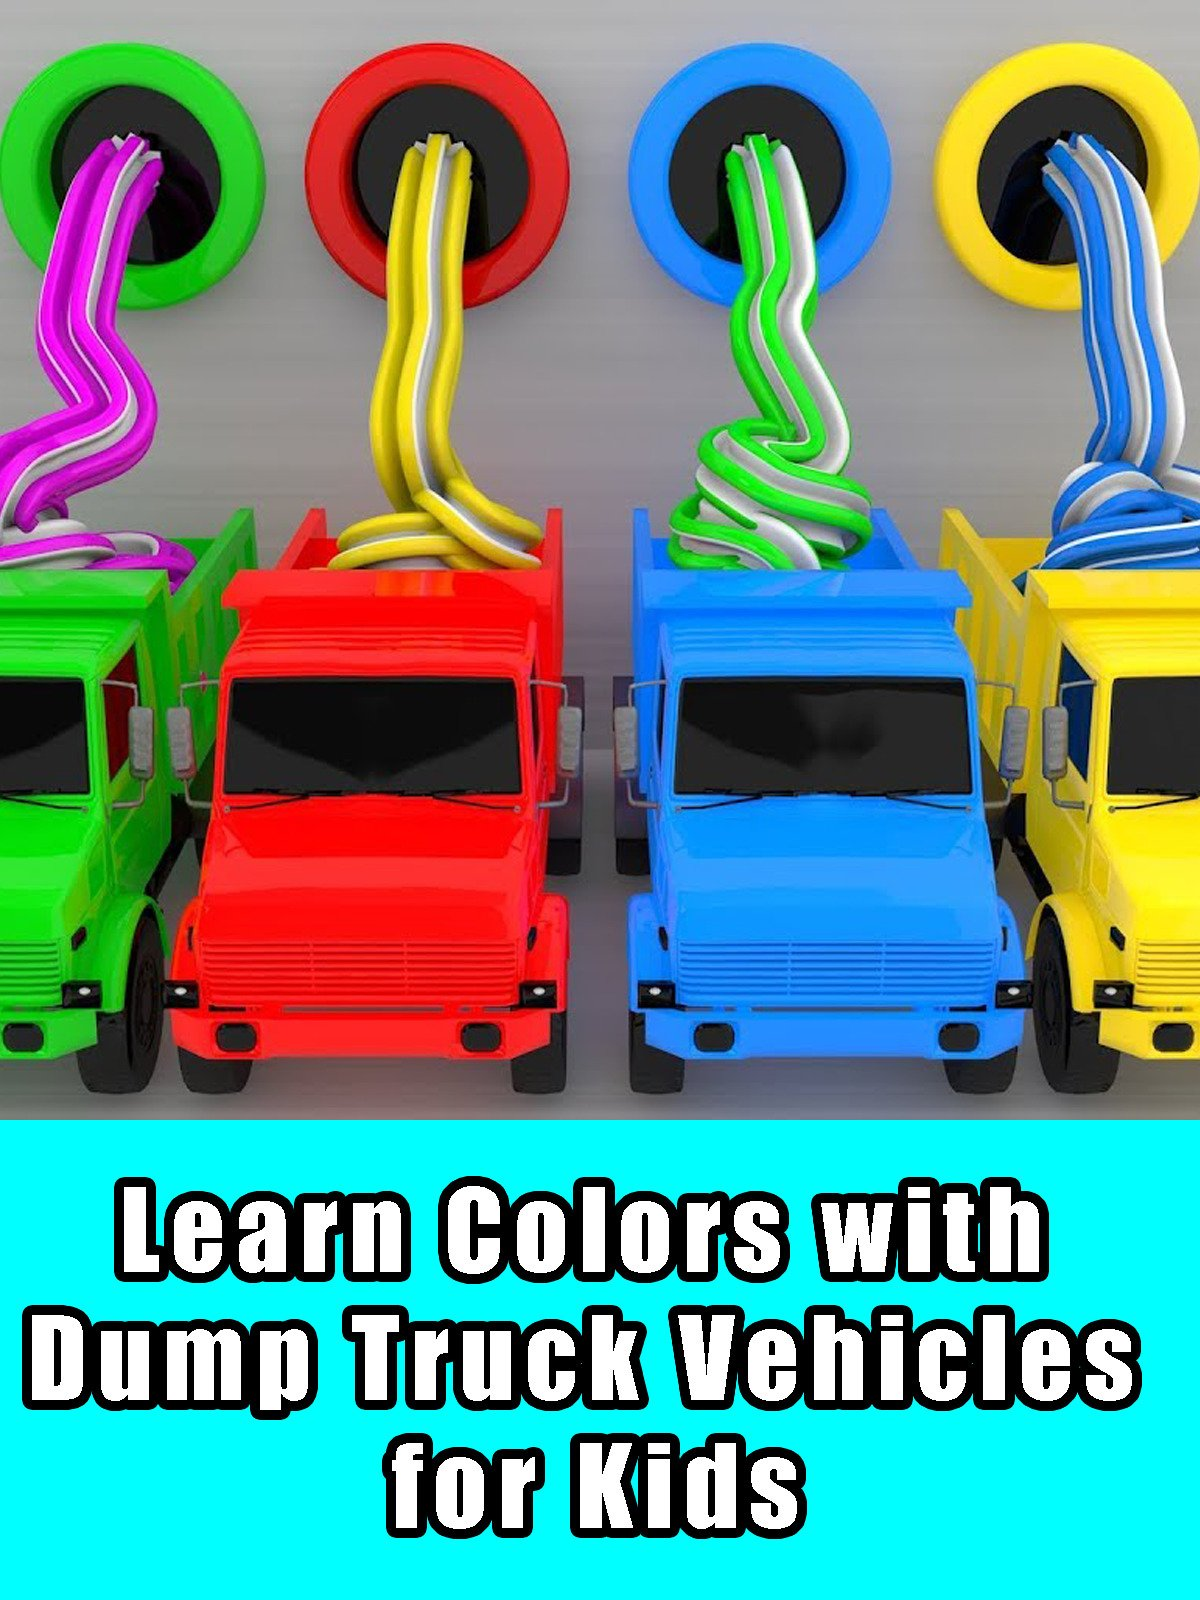 Learn Colors with Dump Truck Vehicles for Kids